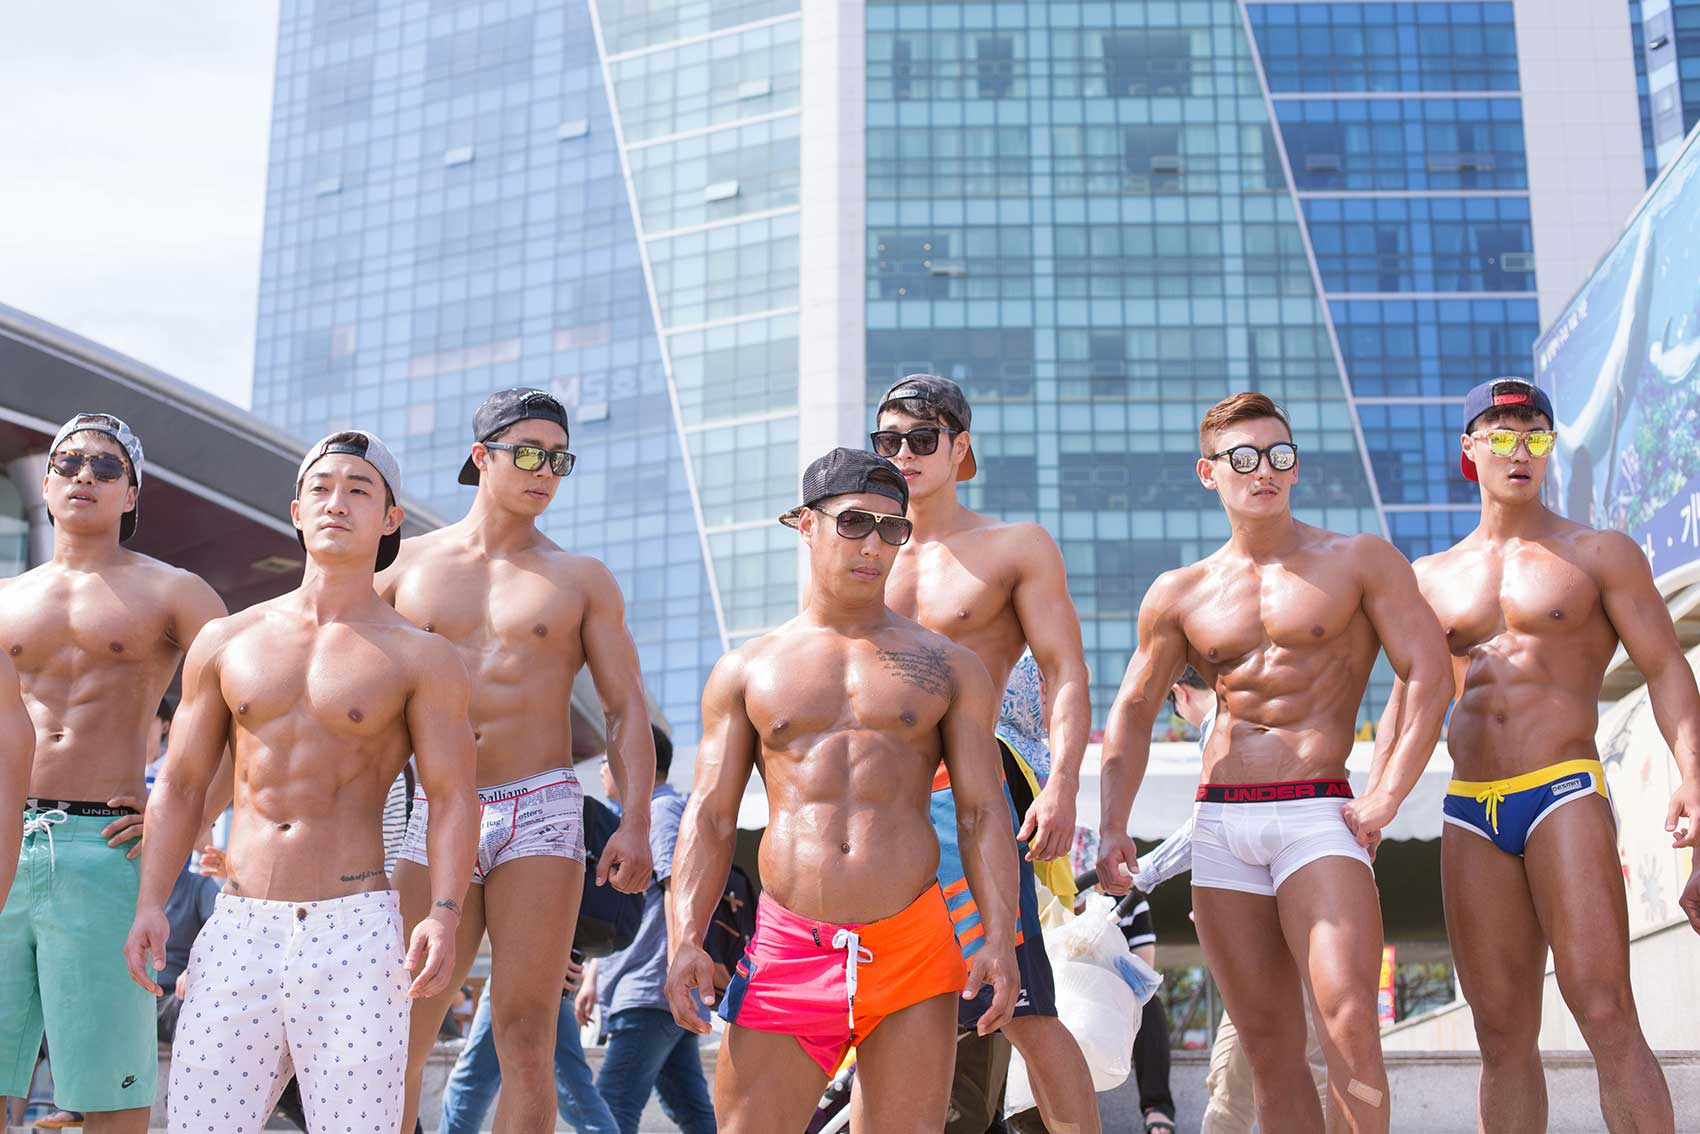 Bodybuilders at Haeundae Beach in Busan.                               Koreans are mad about health and physical appearance. Here appearance matters most; both in terms of beauty and conformity to norms.